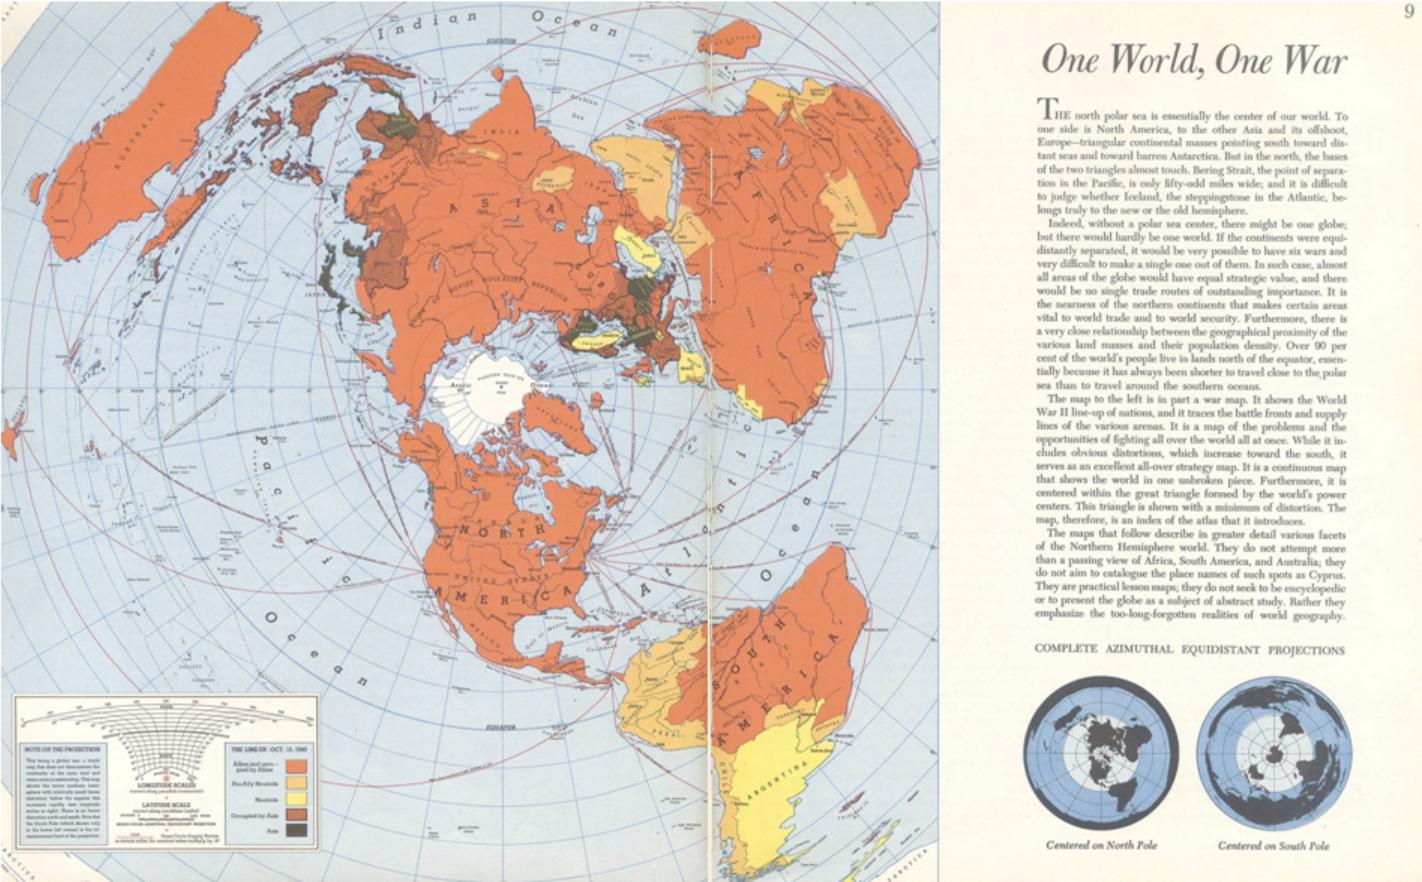 Cartography of globalism: One World…